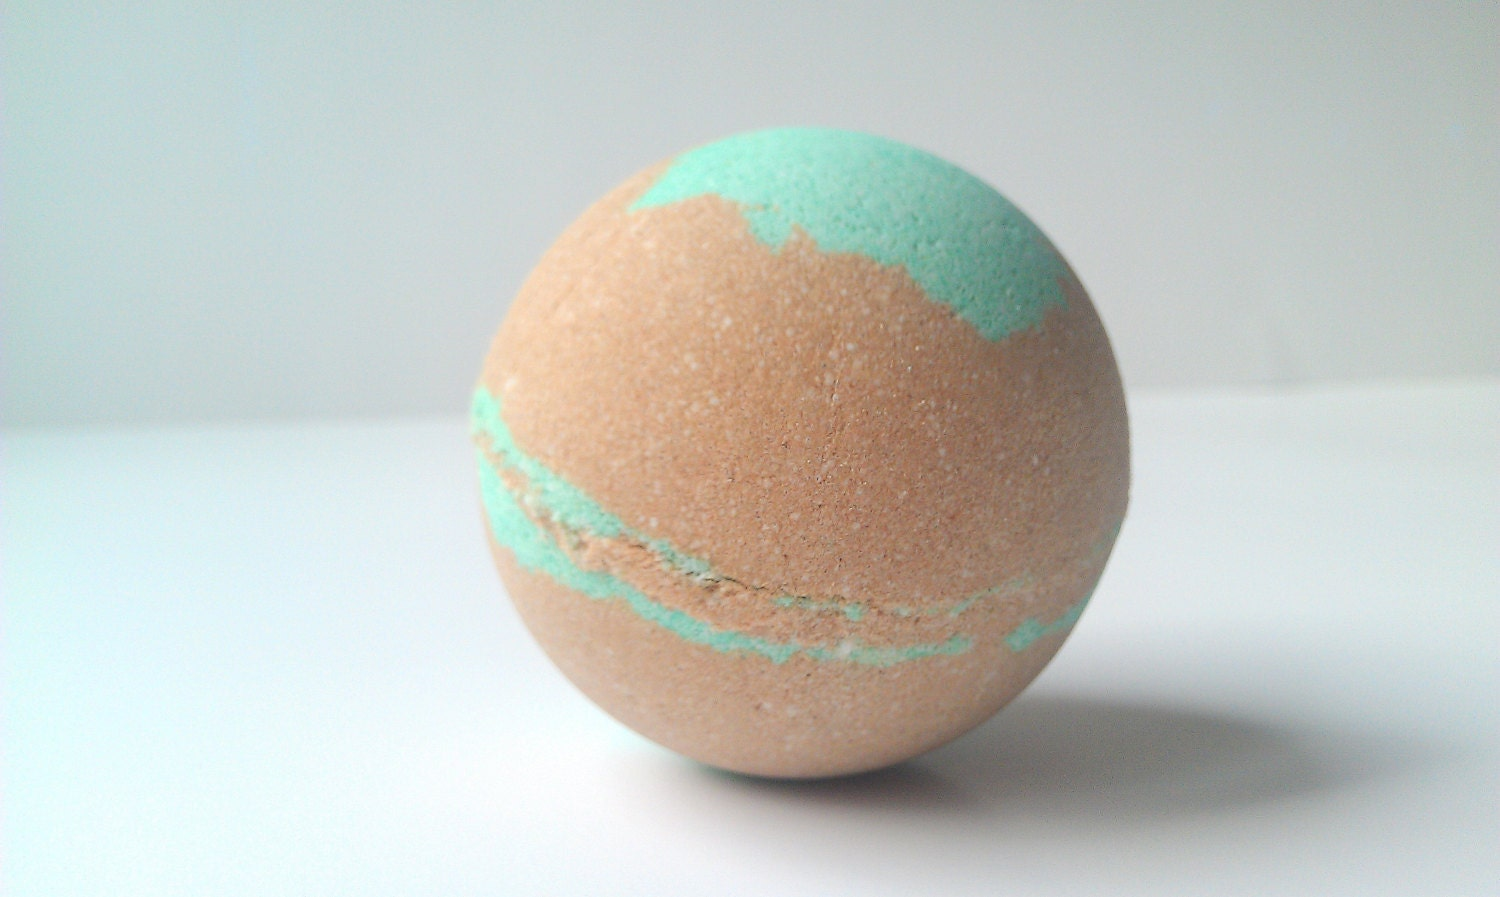 Bath Bomb Mint Chocolate- All Natural, Essential Oils, Holiday Gift Ideas, Gifts For Her, 5.5 oz - ZENfulNaturals